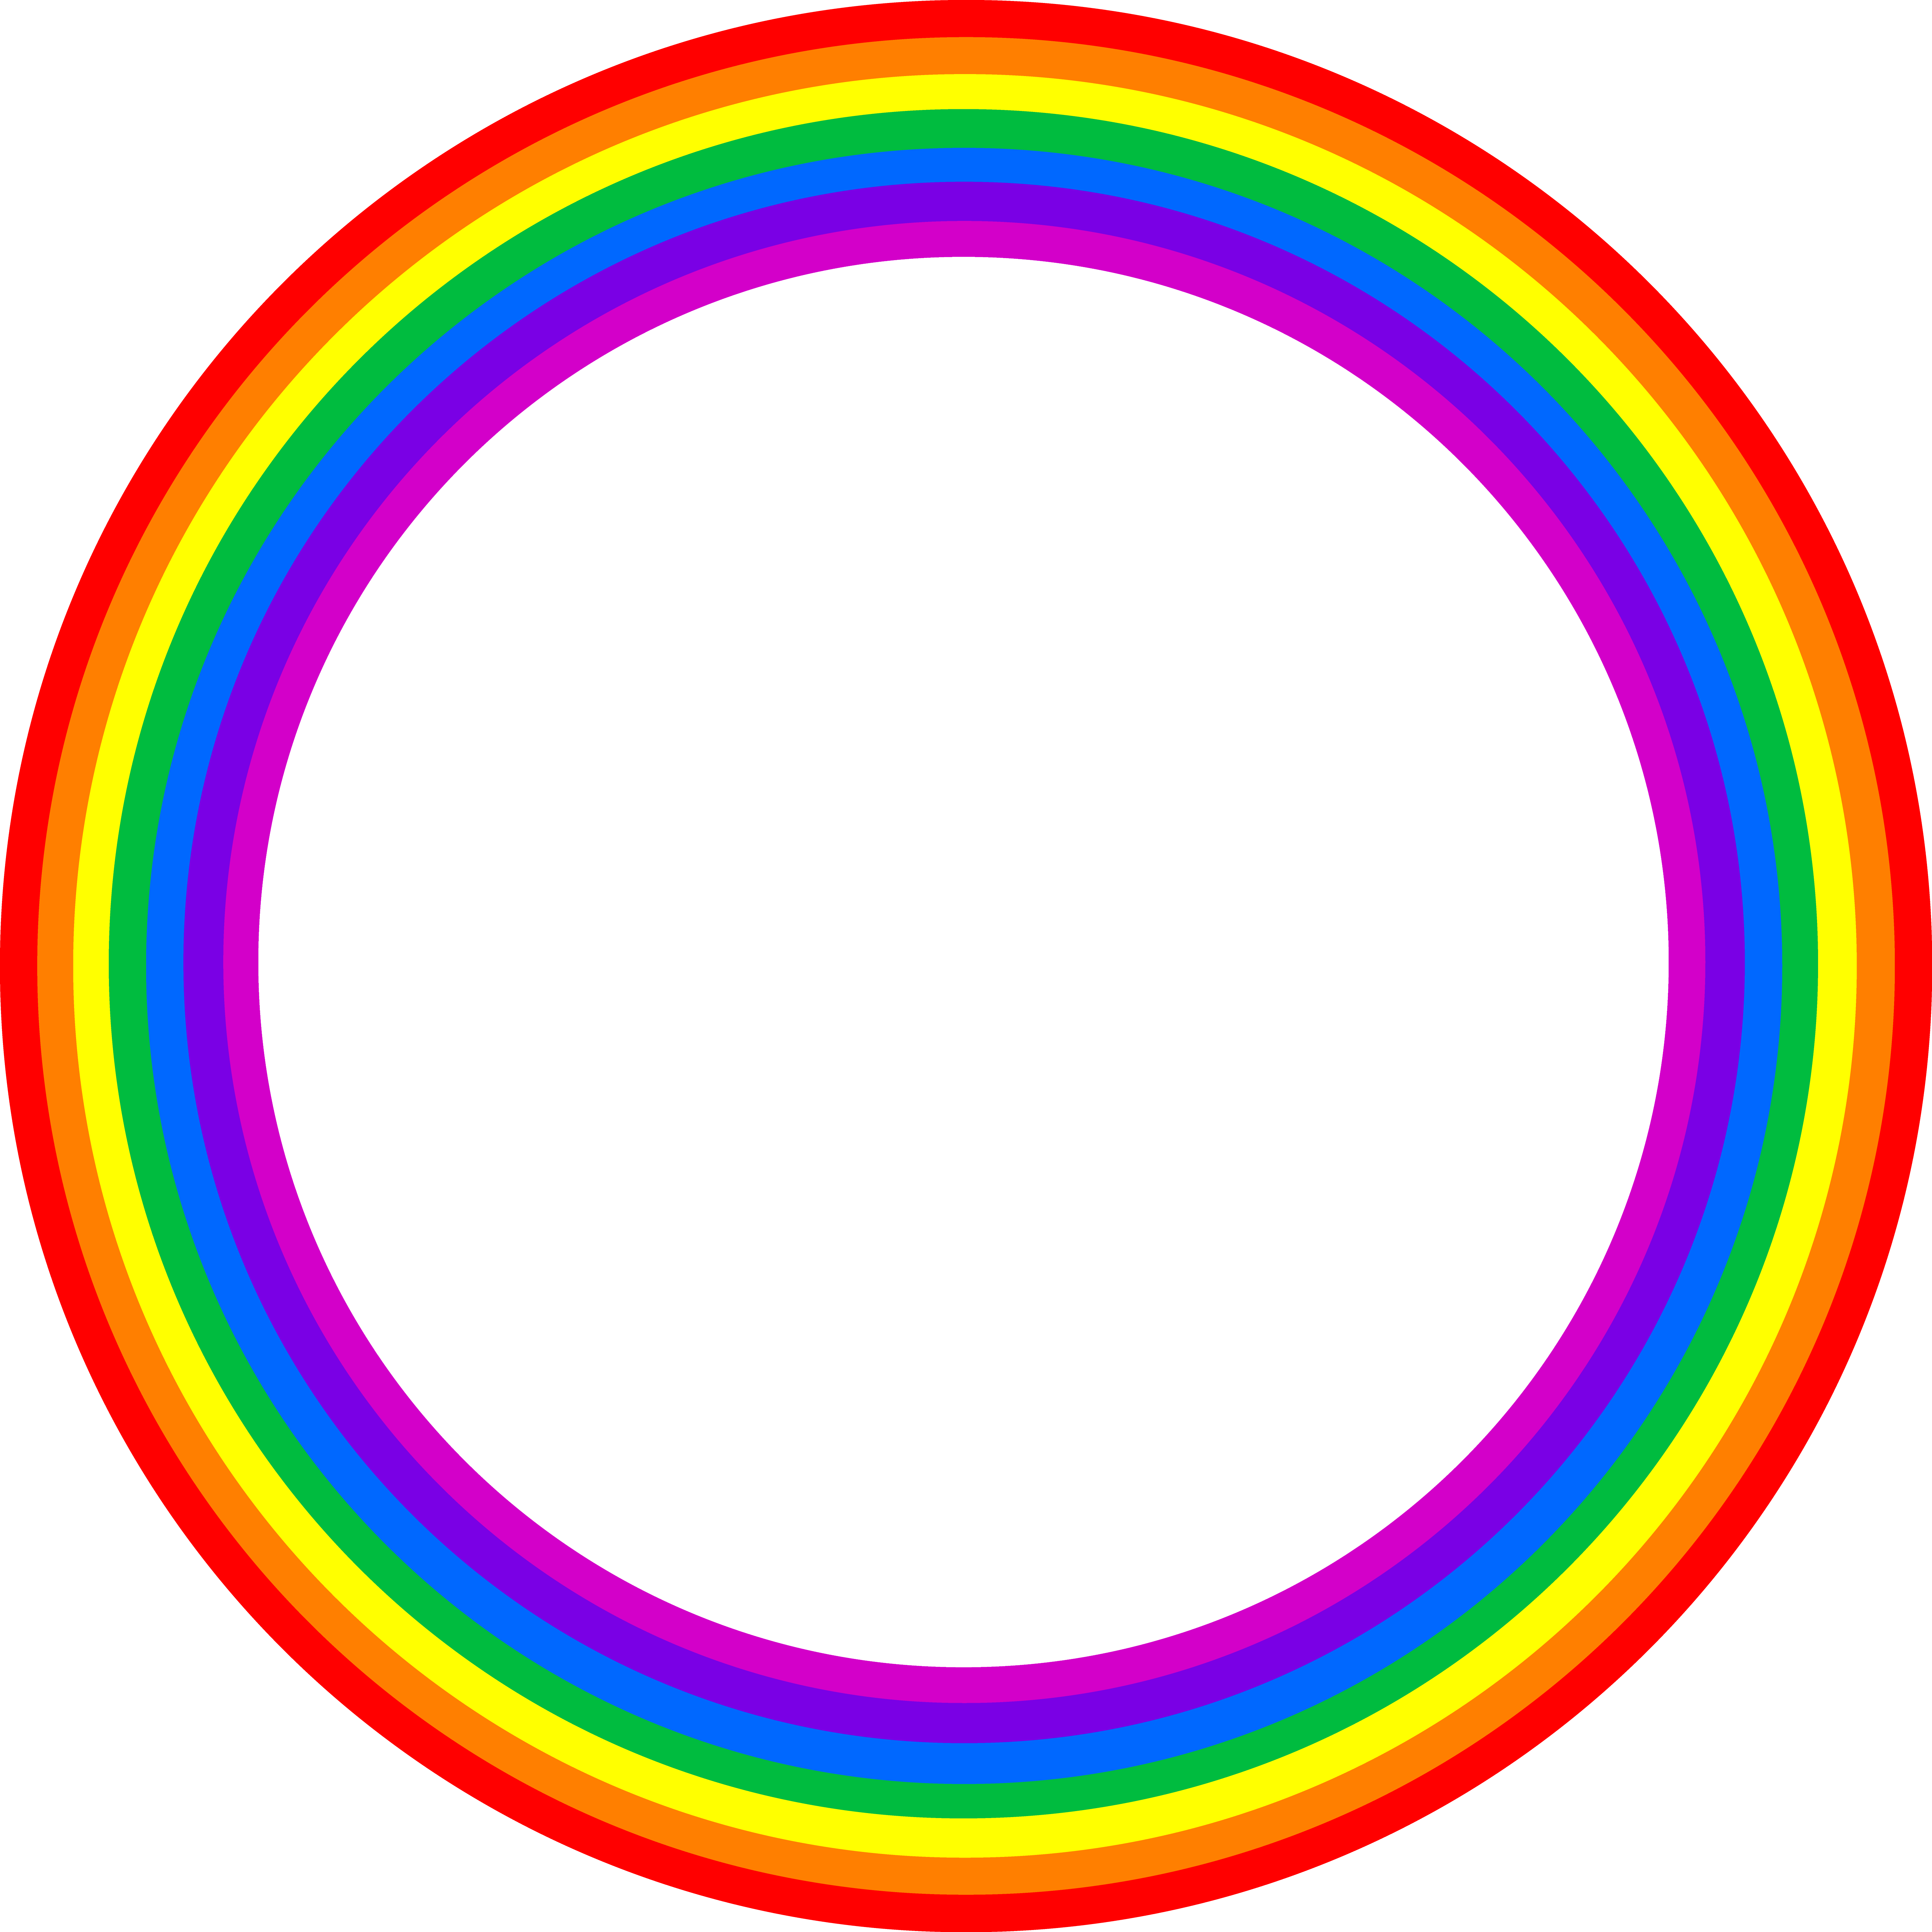 Full circle rainbow free. Teamwork clipart transparent background